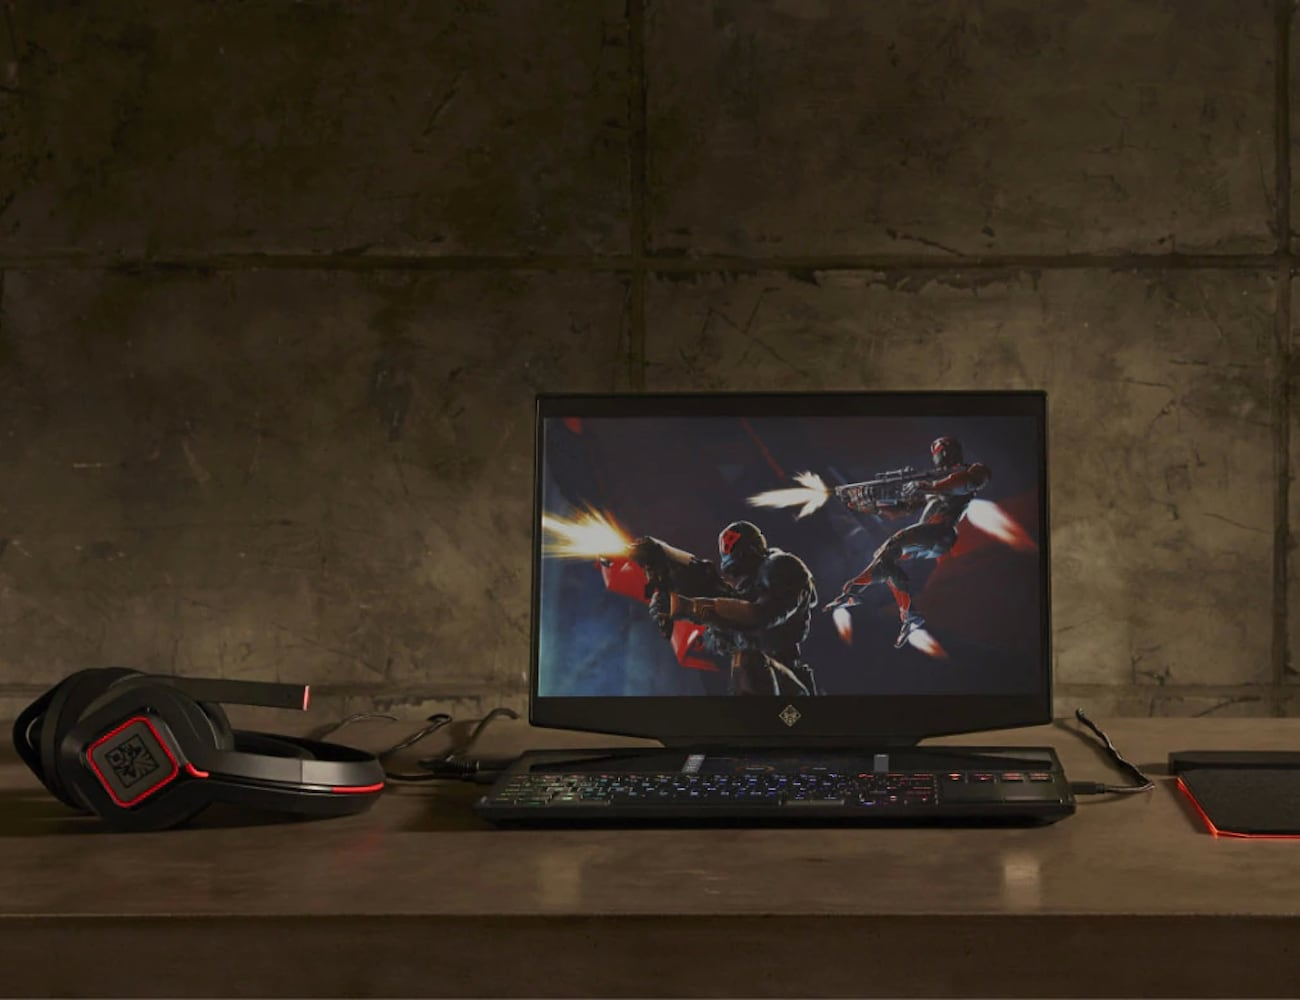 HP OMEN X 2S Dual-Screen Gaming Laptop has an above-keyboard touchscreen